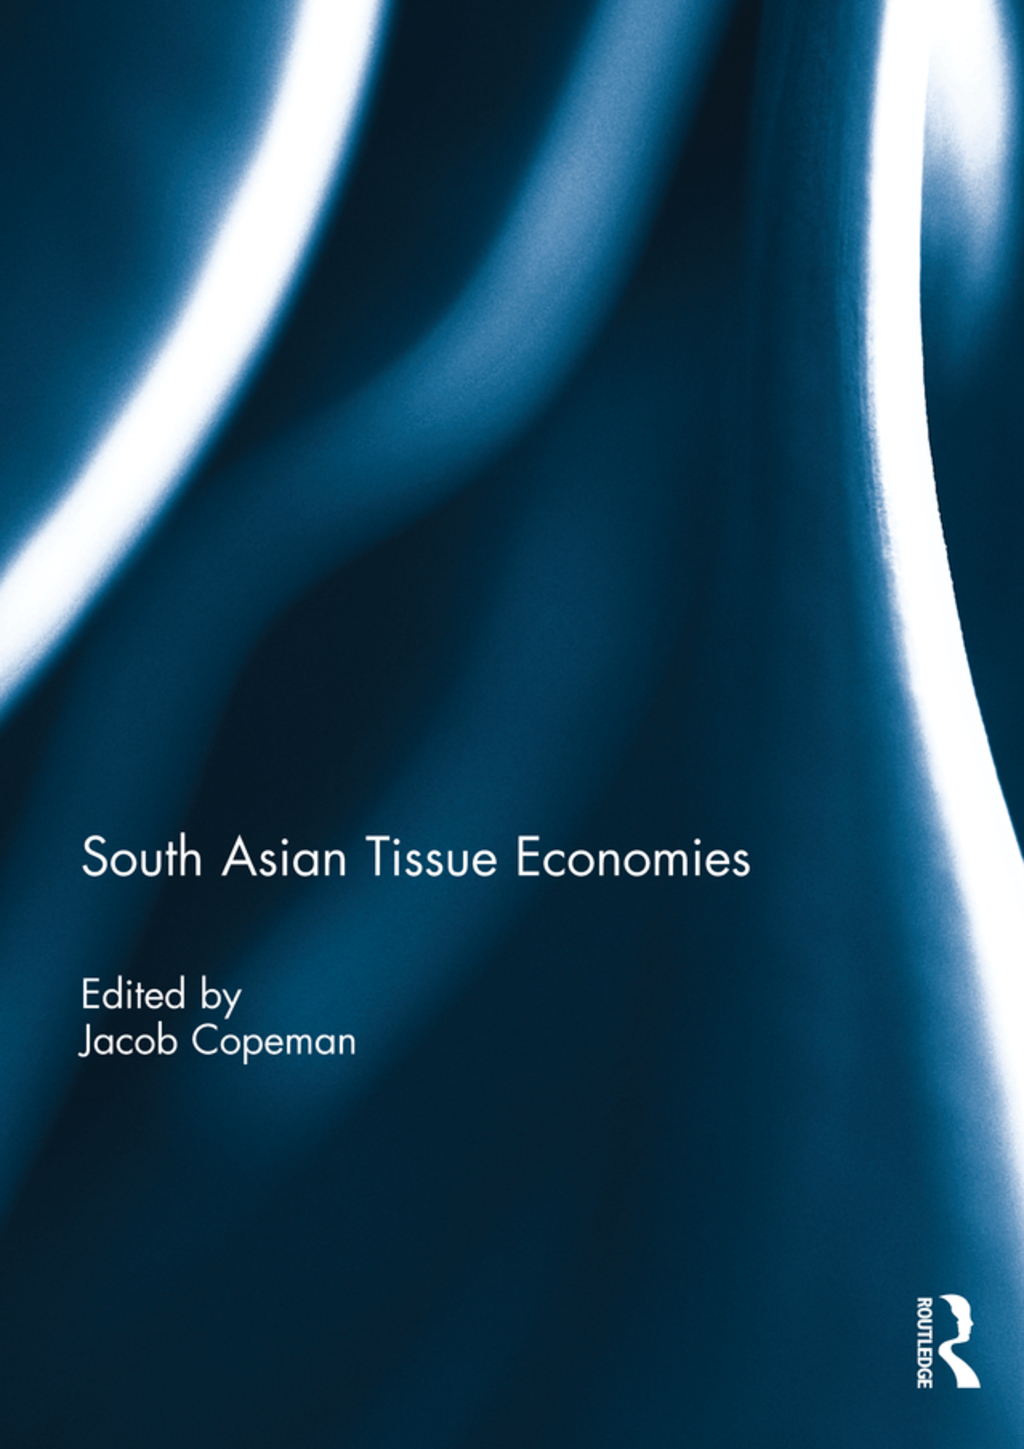 South Asian Tissue Economies (ebook)